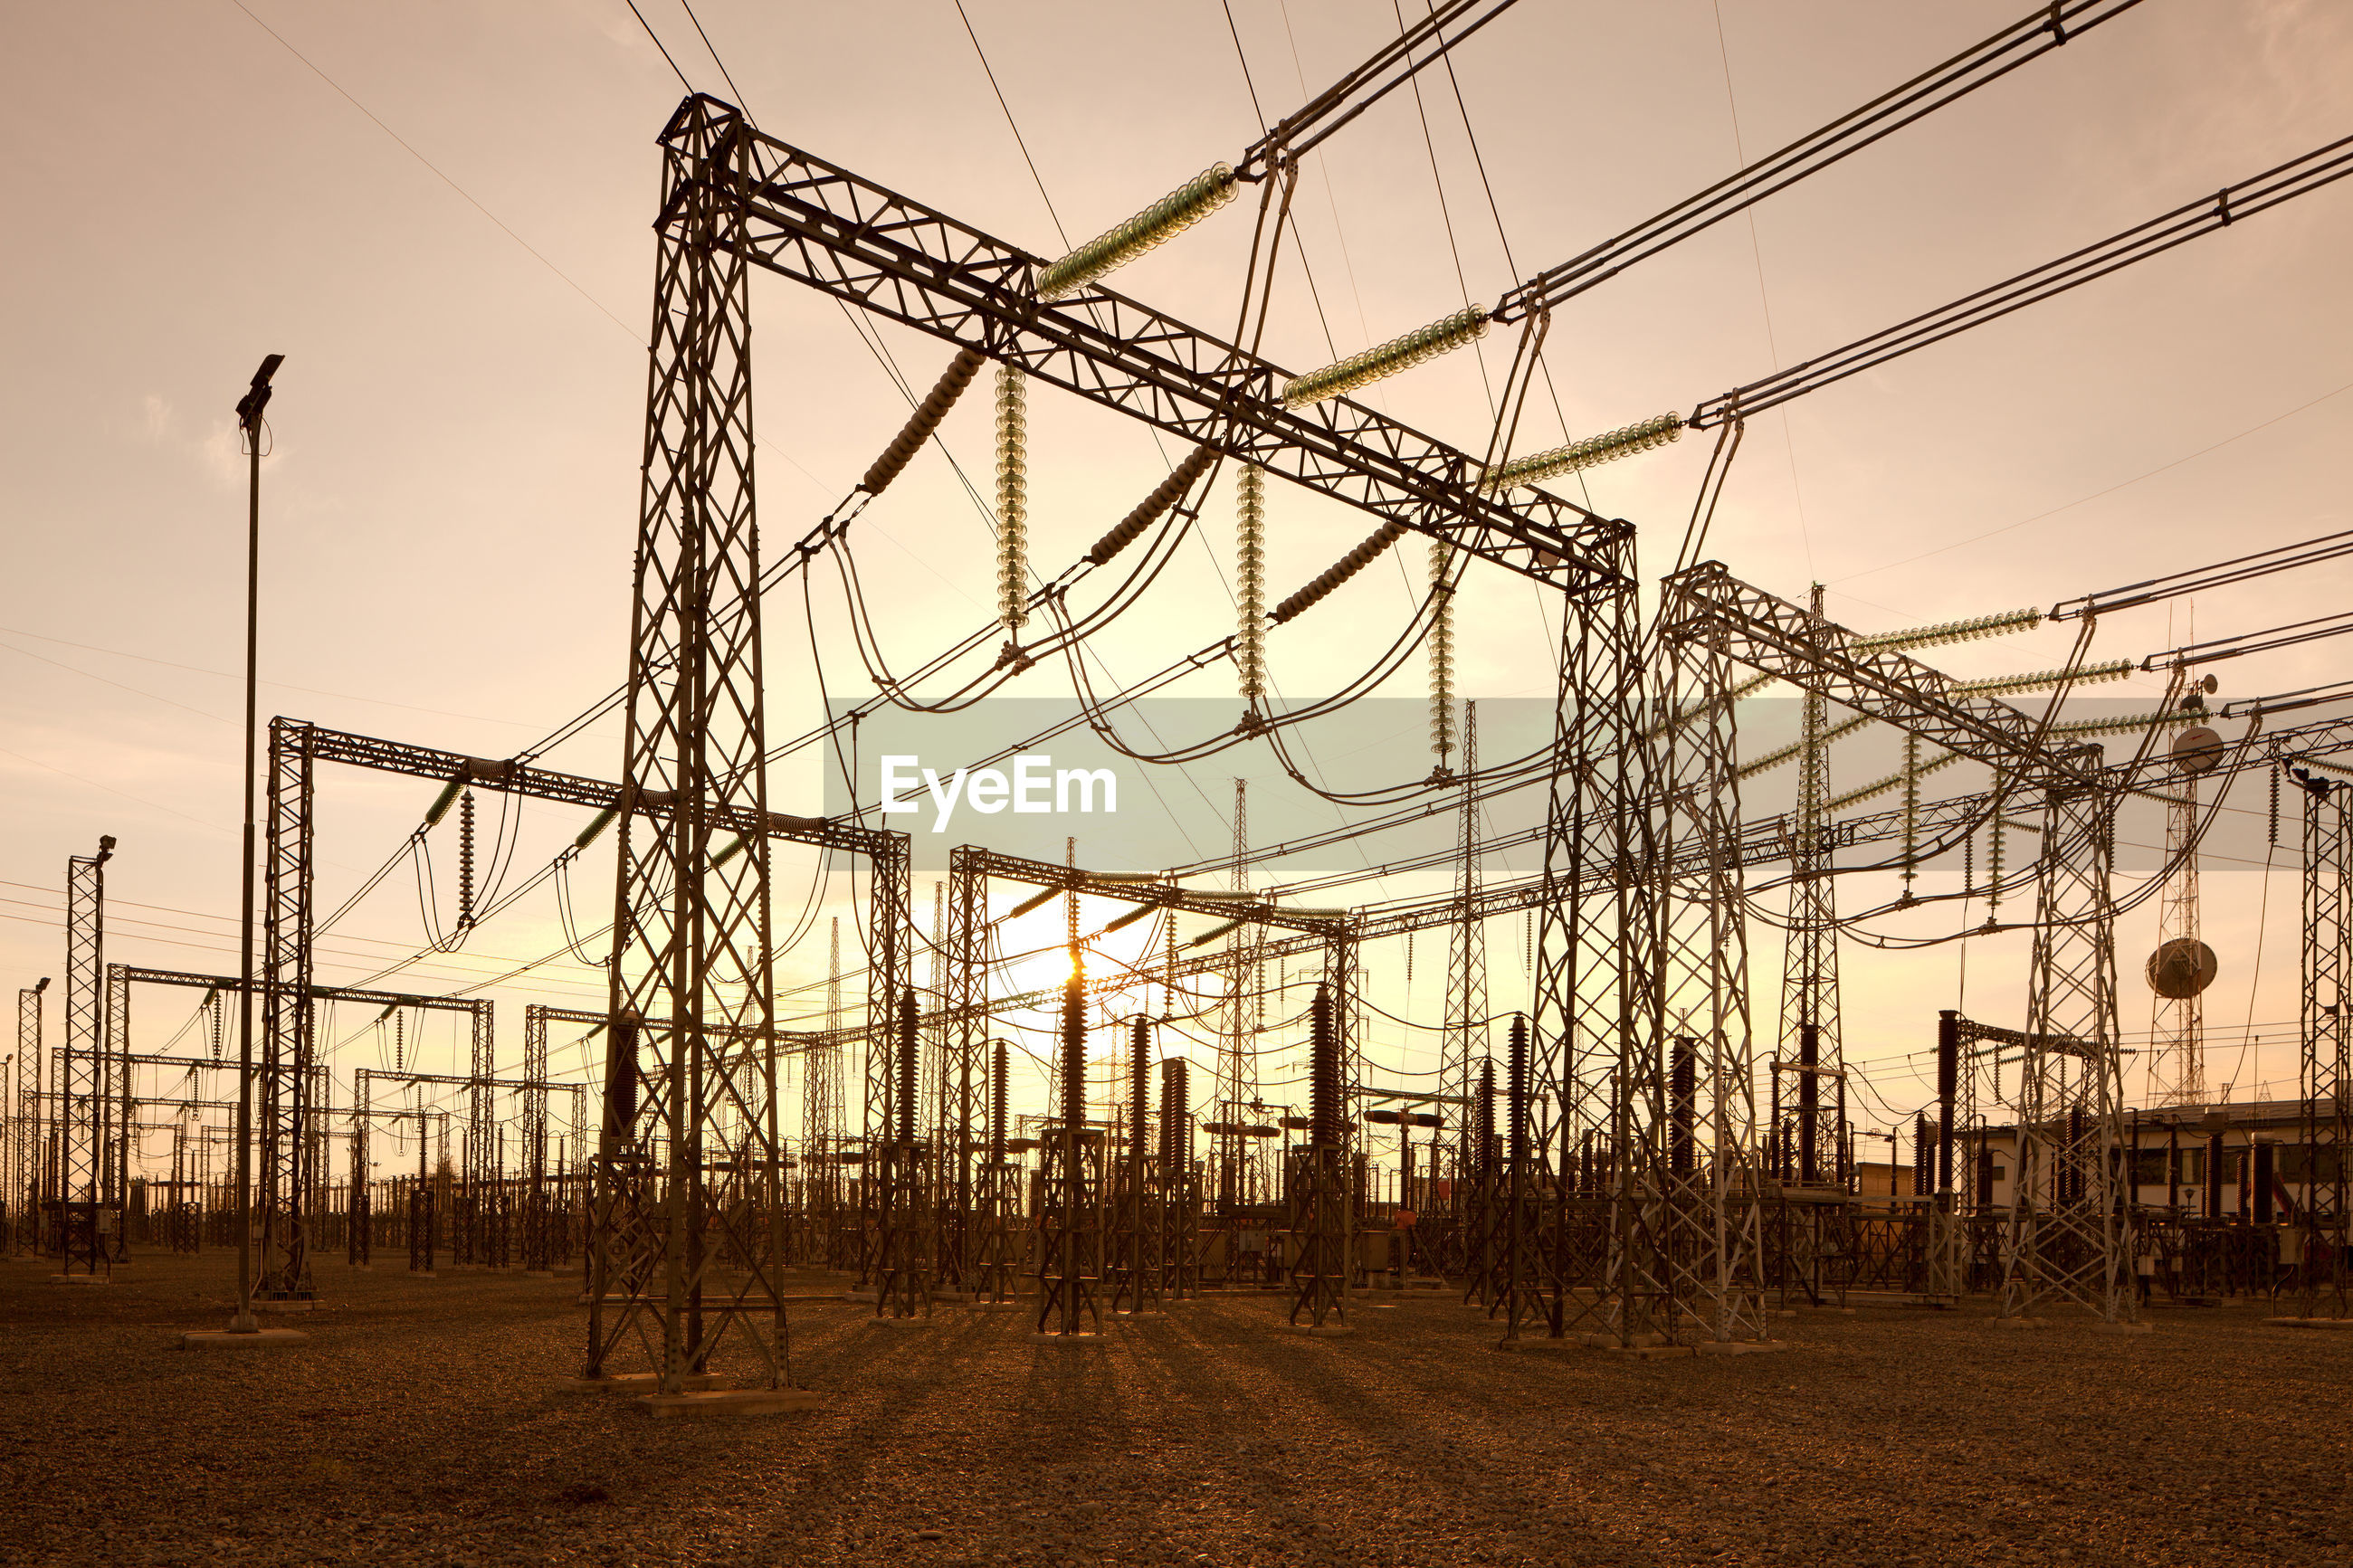 Low angle view of electric power substation during sunset